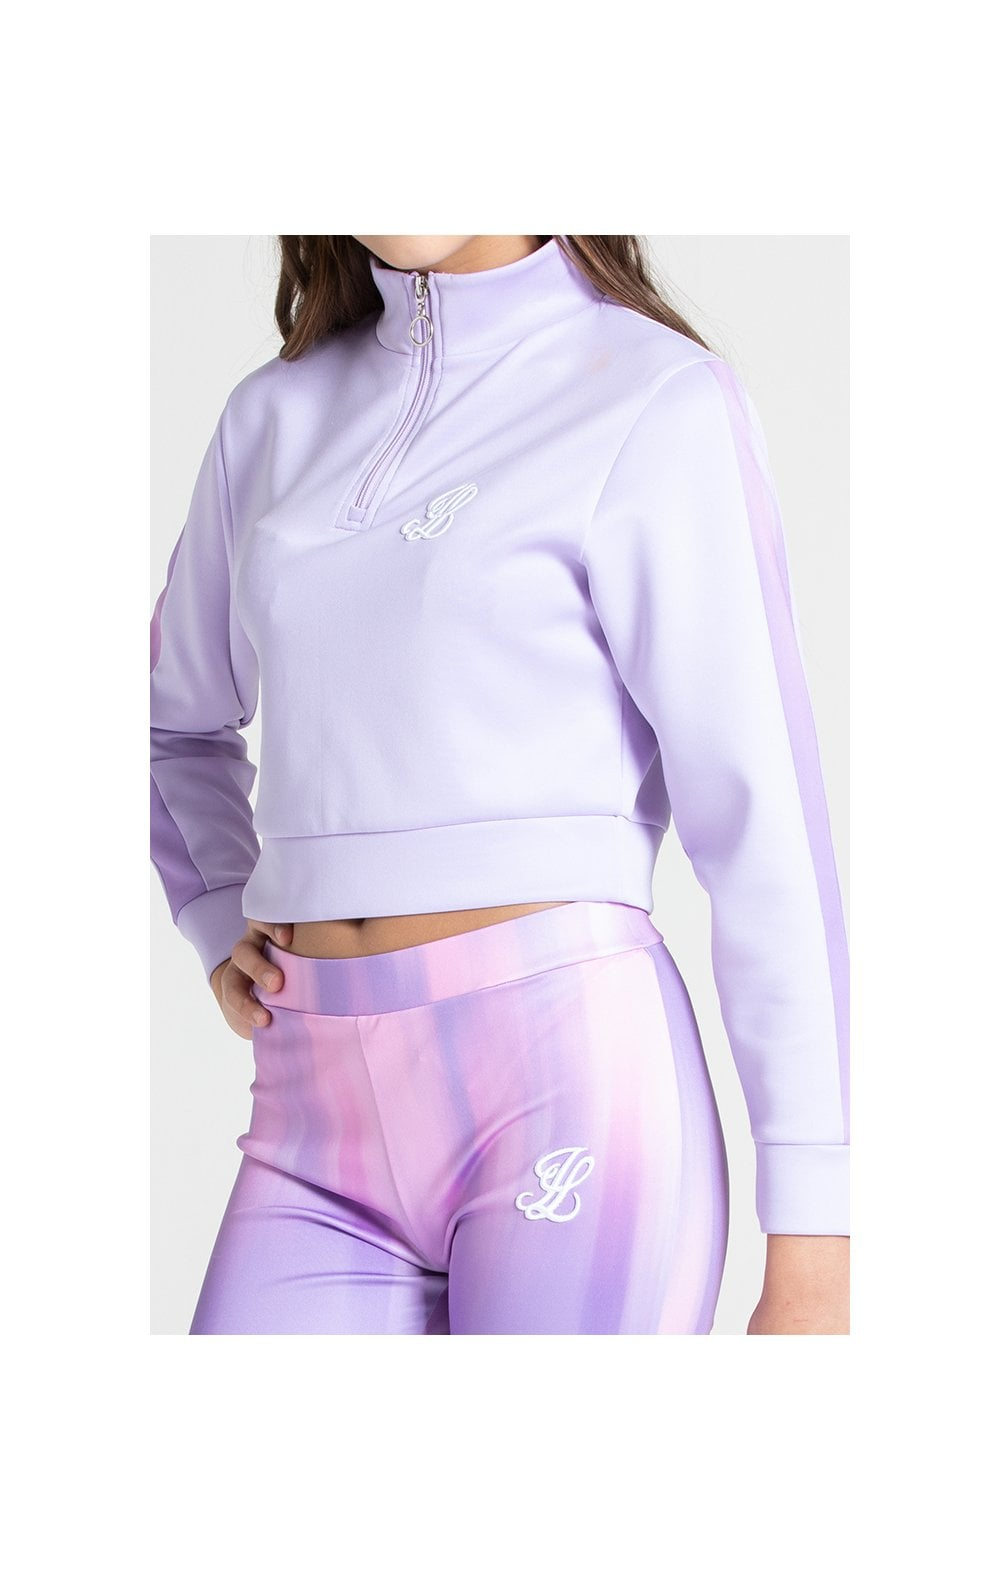 Illusive London Cropped 1/4 Zip Hoodie - Lavender